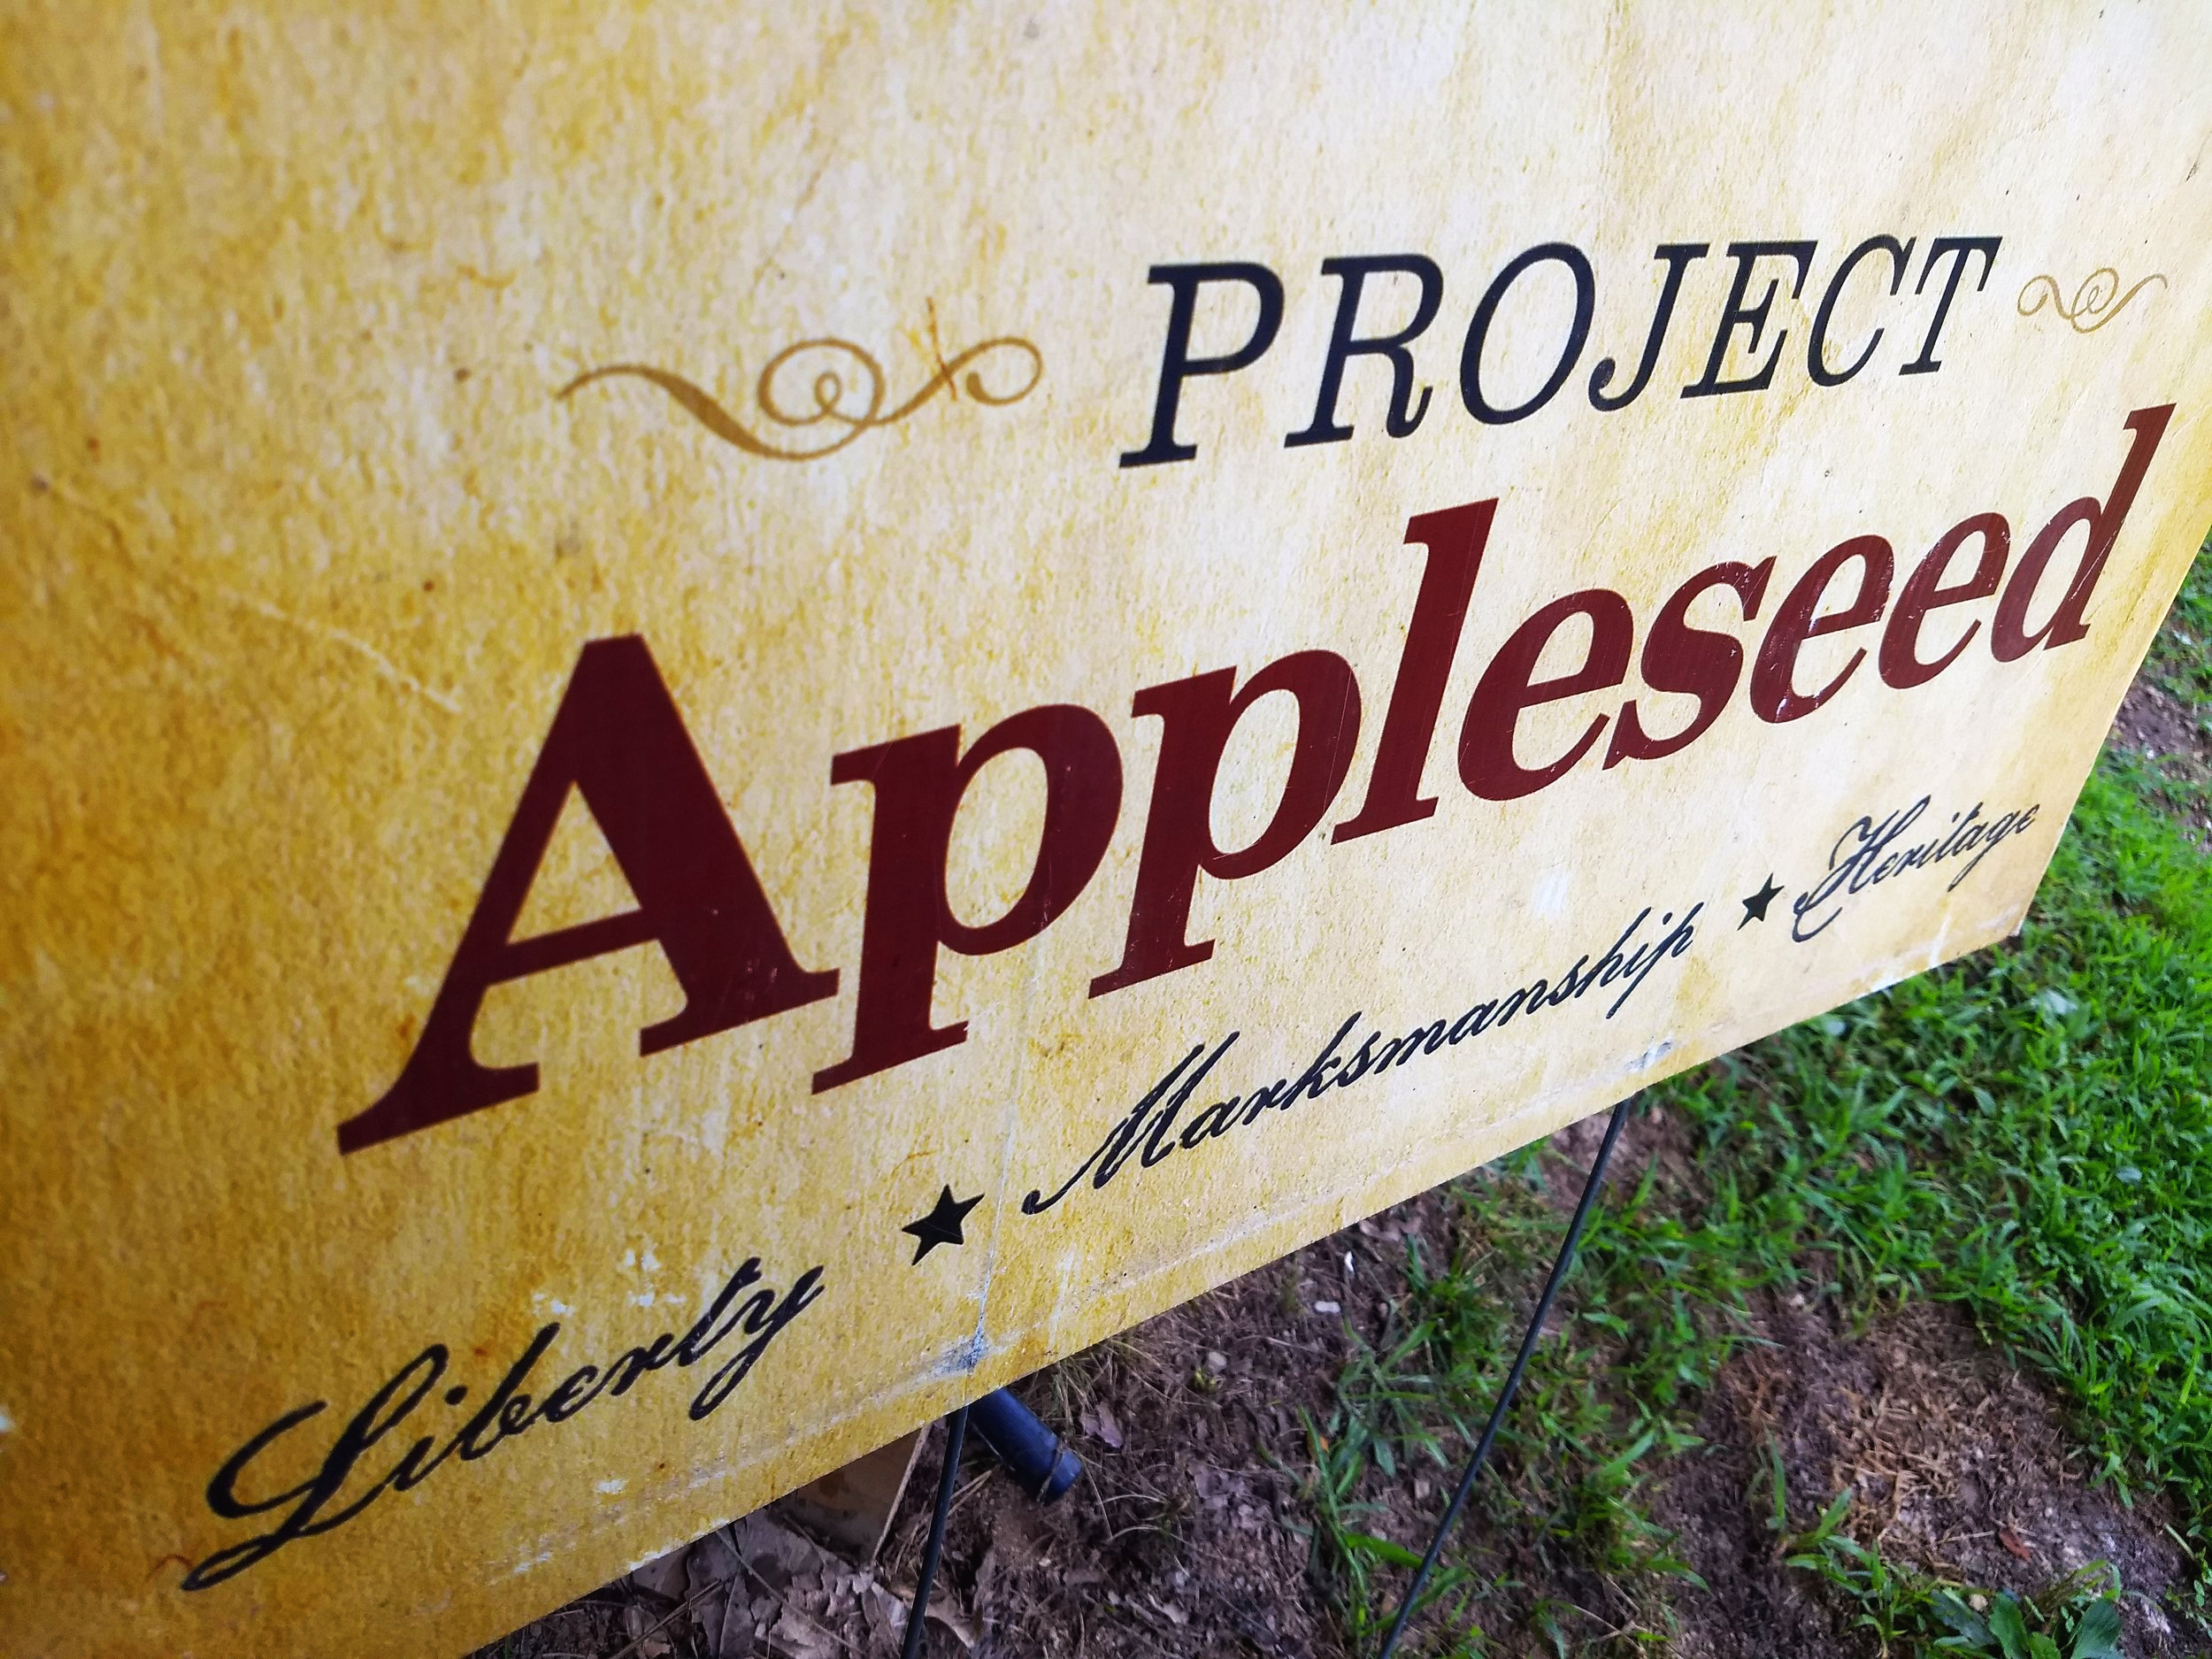 Hosting an Event - We recently hosted a Project Appleseed which is historical marksmanship class on the farm.  We have hosted them before and really love opening up the farm and range for people to learn and enjoy.